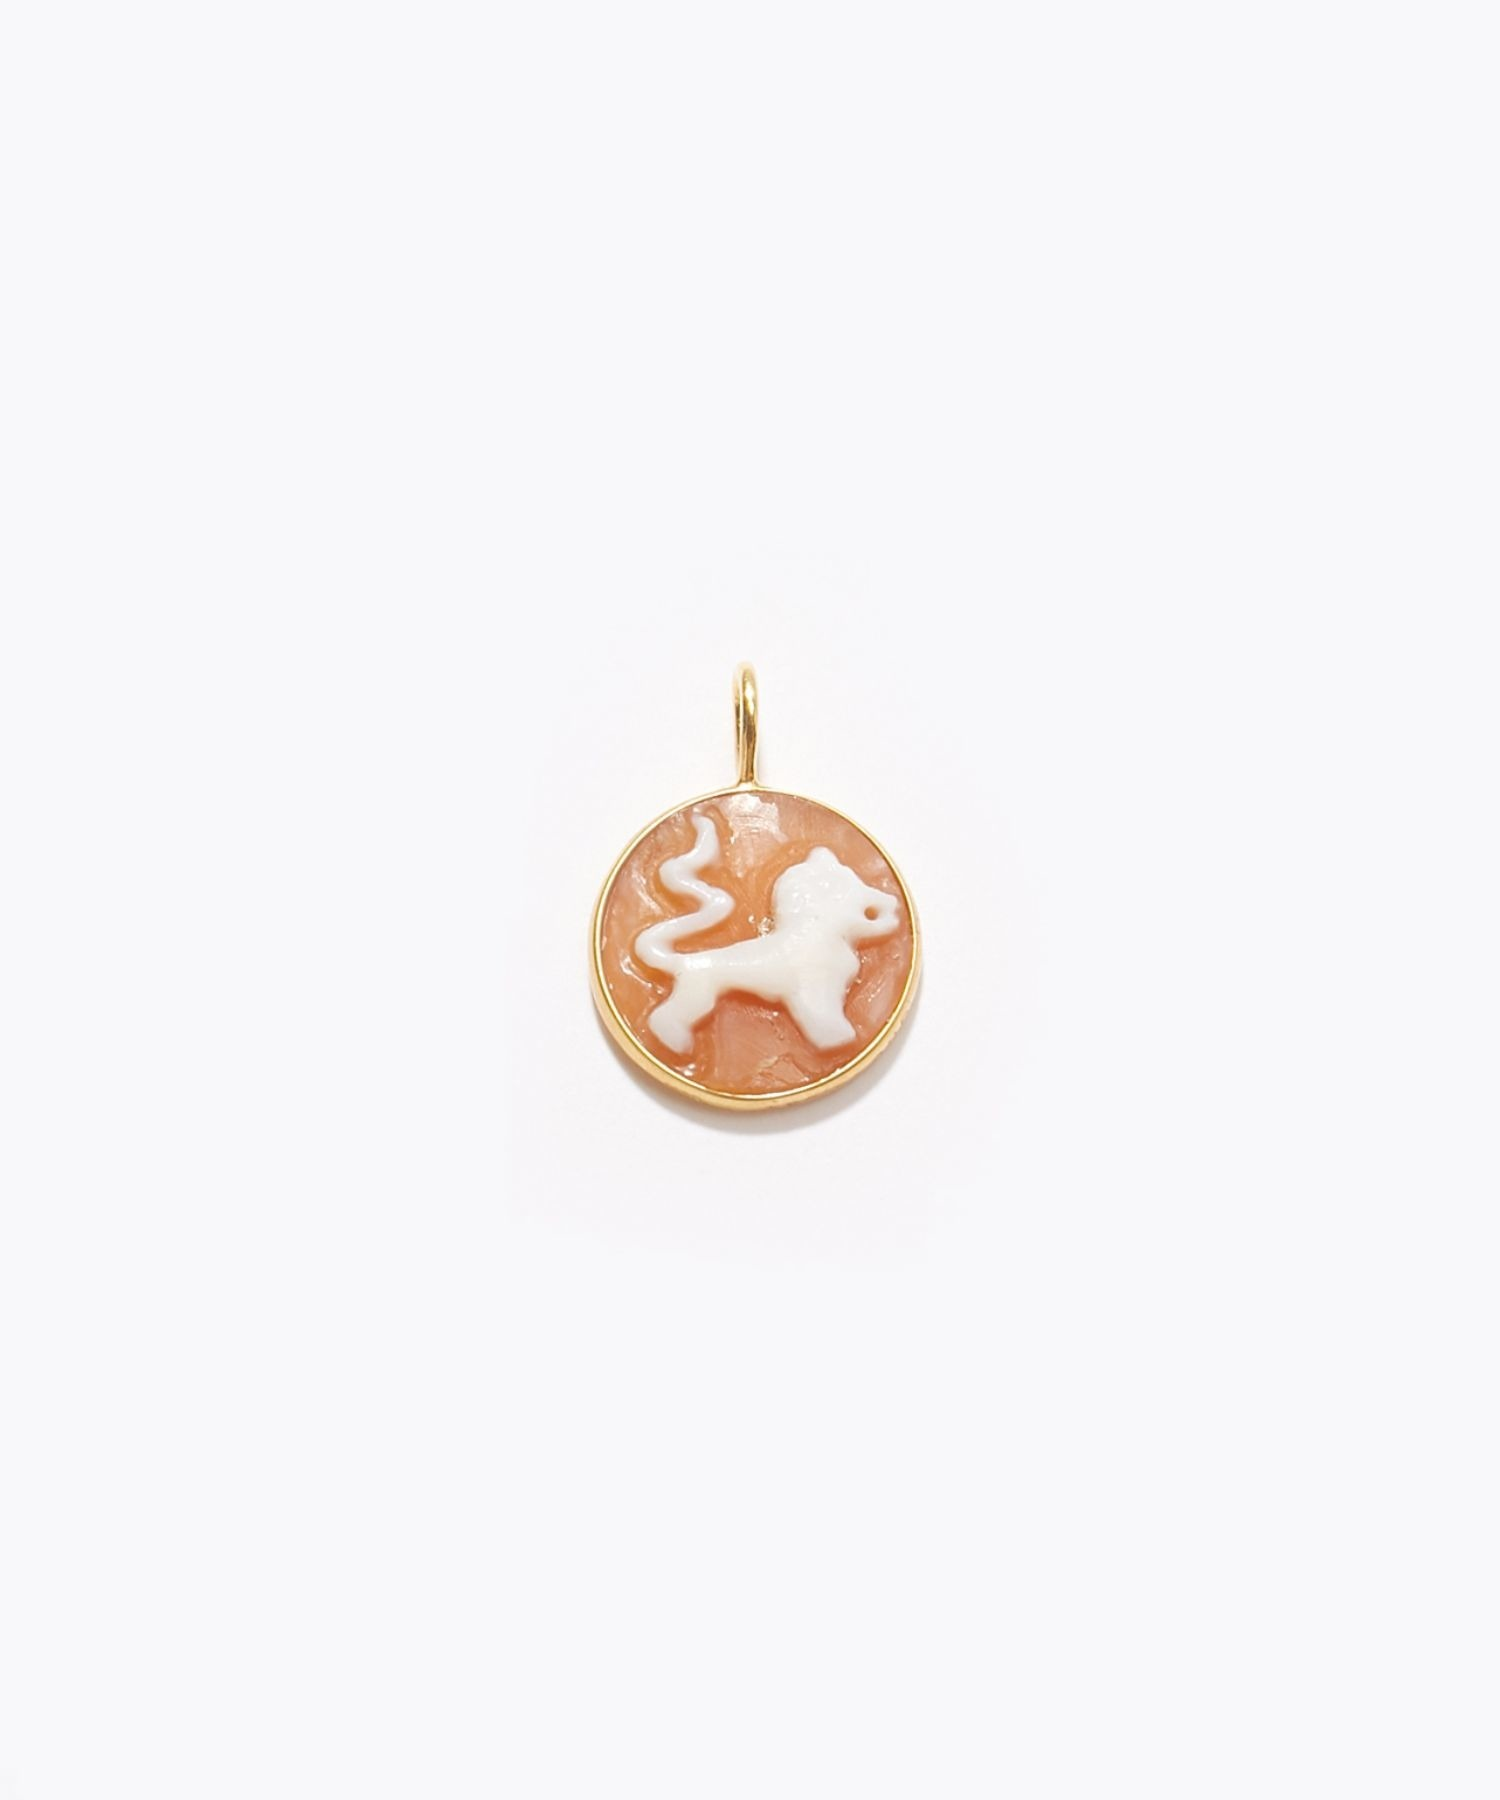 [constellation] Leo cameo curving charm